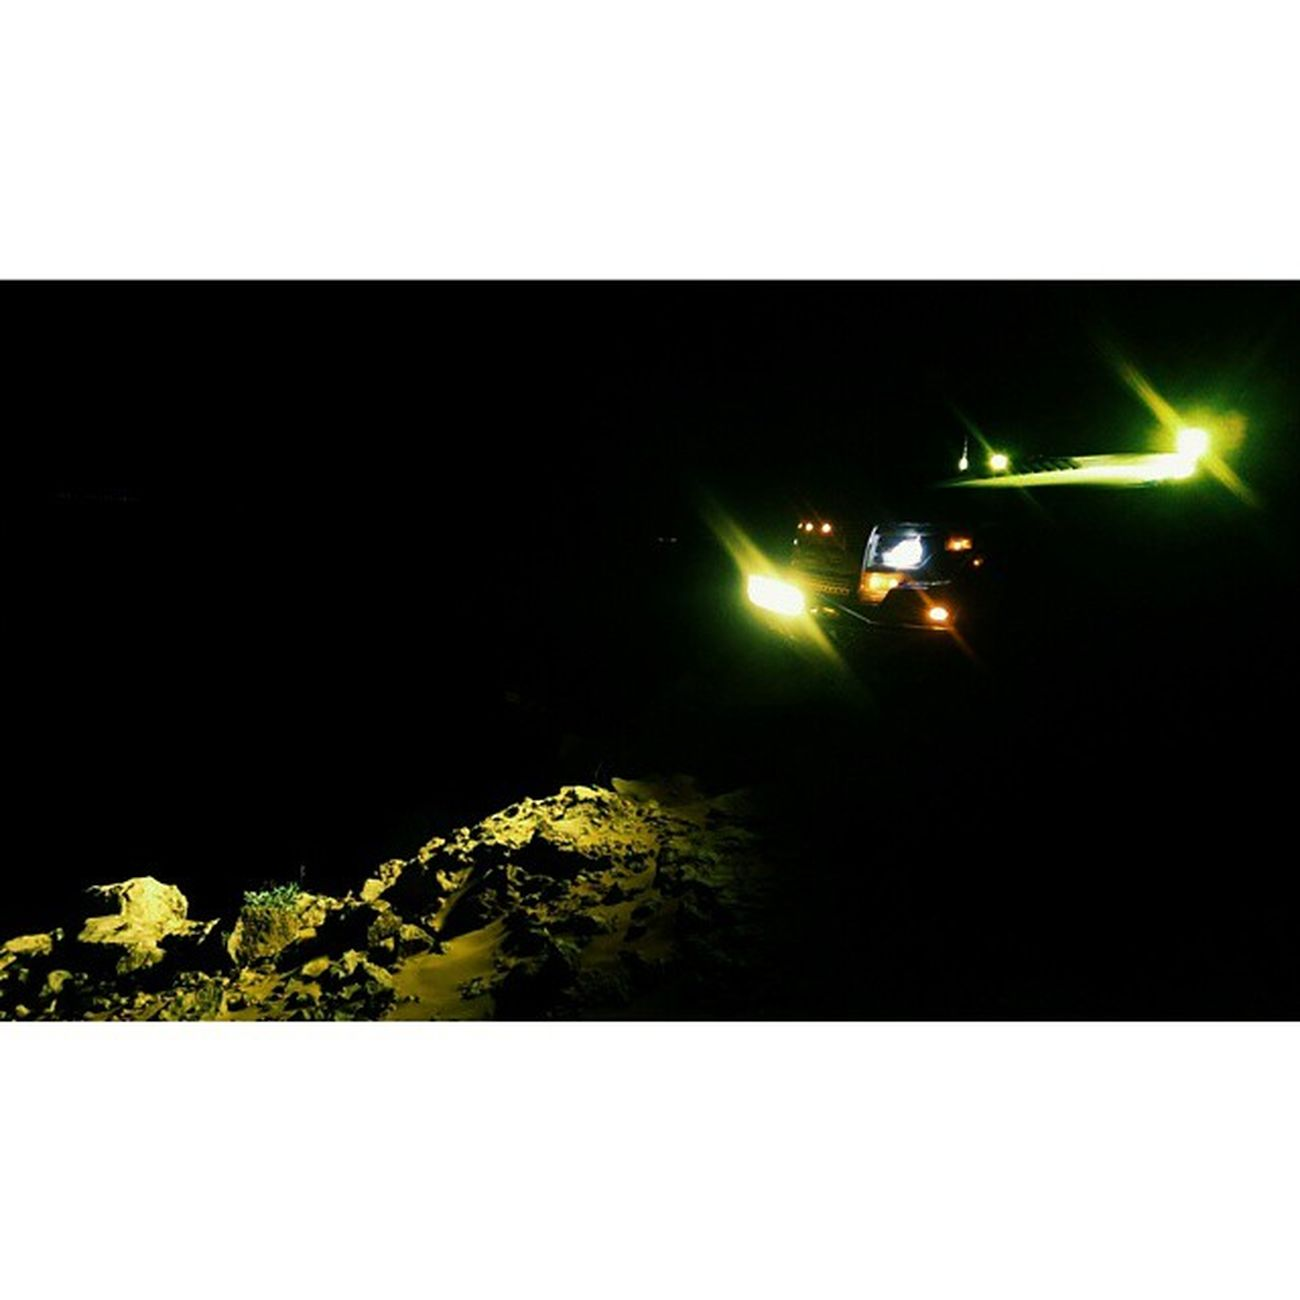 That freaky moment when the trail starts to get rocky and it eventually ends. Cliffs Highaltitudes Reverselights Gaspedal fullthrottle playdumb amberlights bajadesigns visionx sdhq